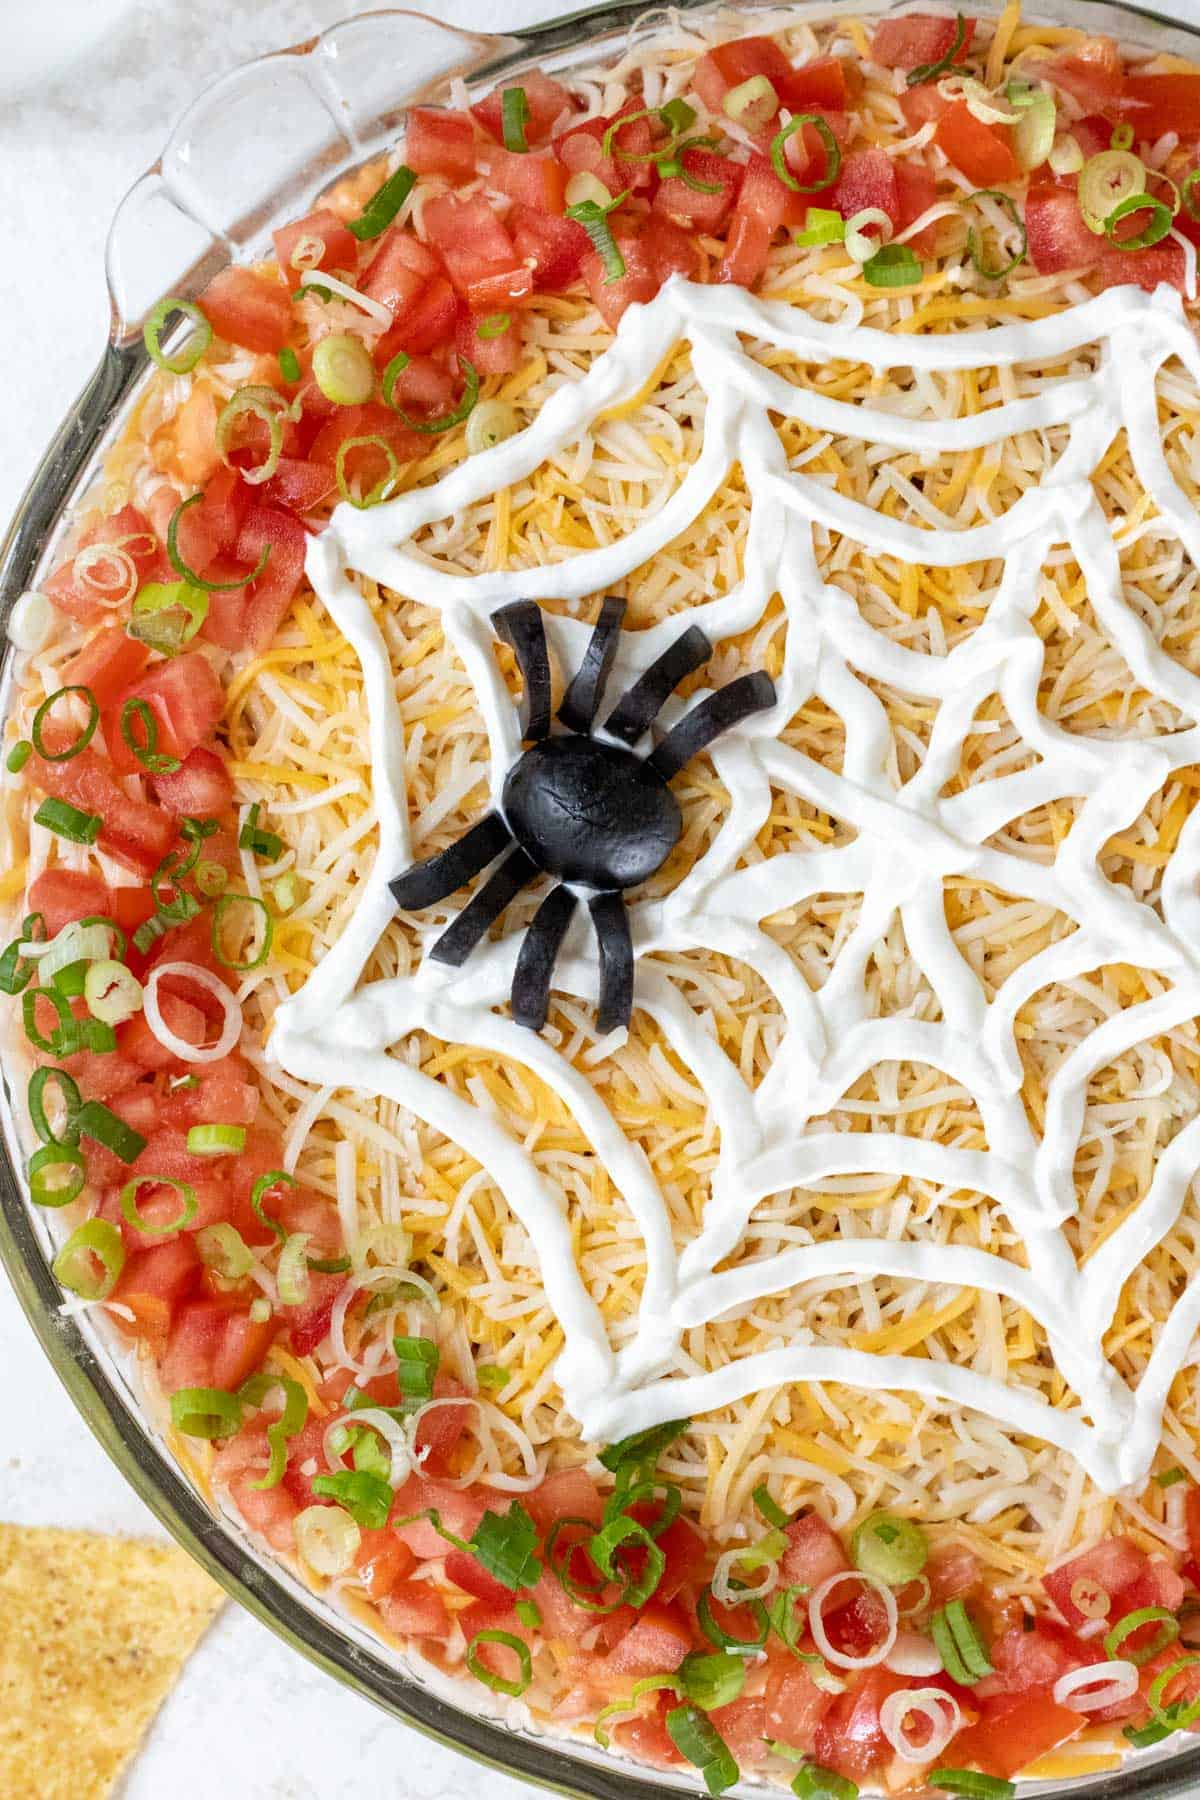 A closeup of a spider made out of black olives and a web made out of sour cream on top of Halloween taco dip.